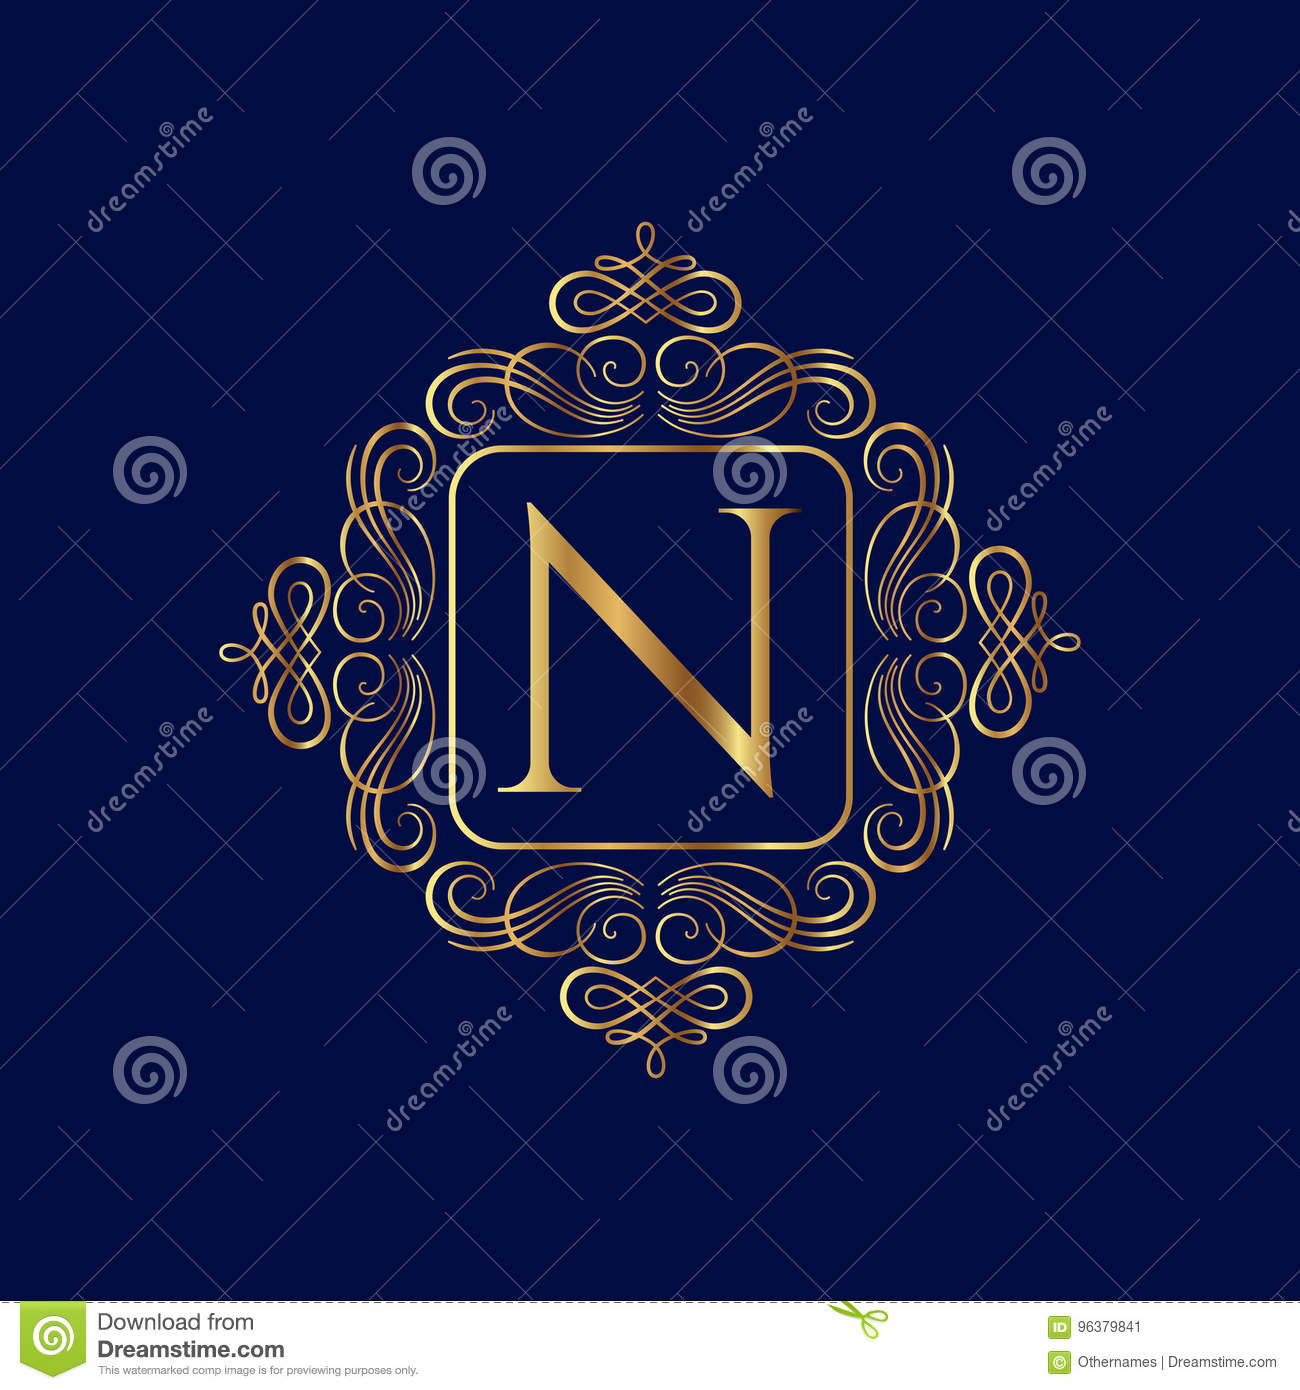 Elegant Monogram Design Template Wedding Monogram Stock Vector